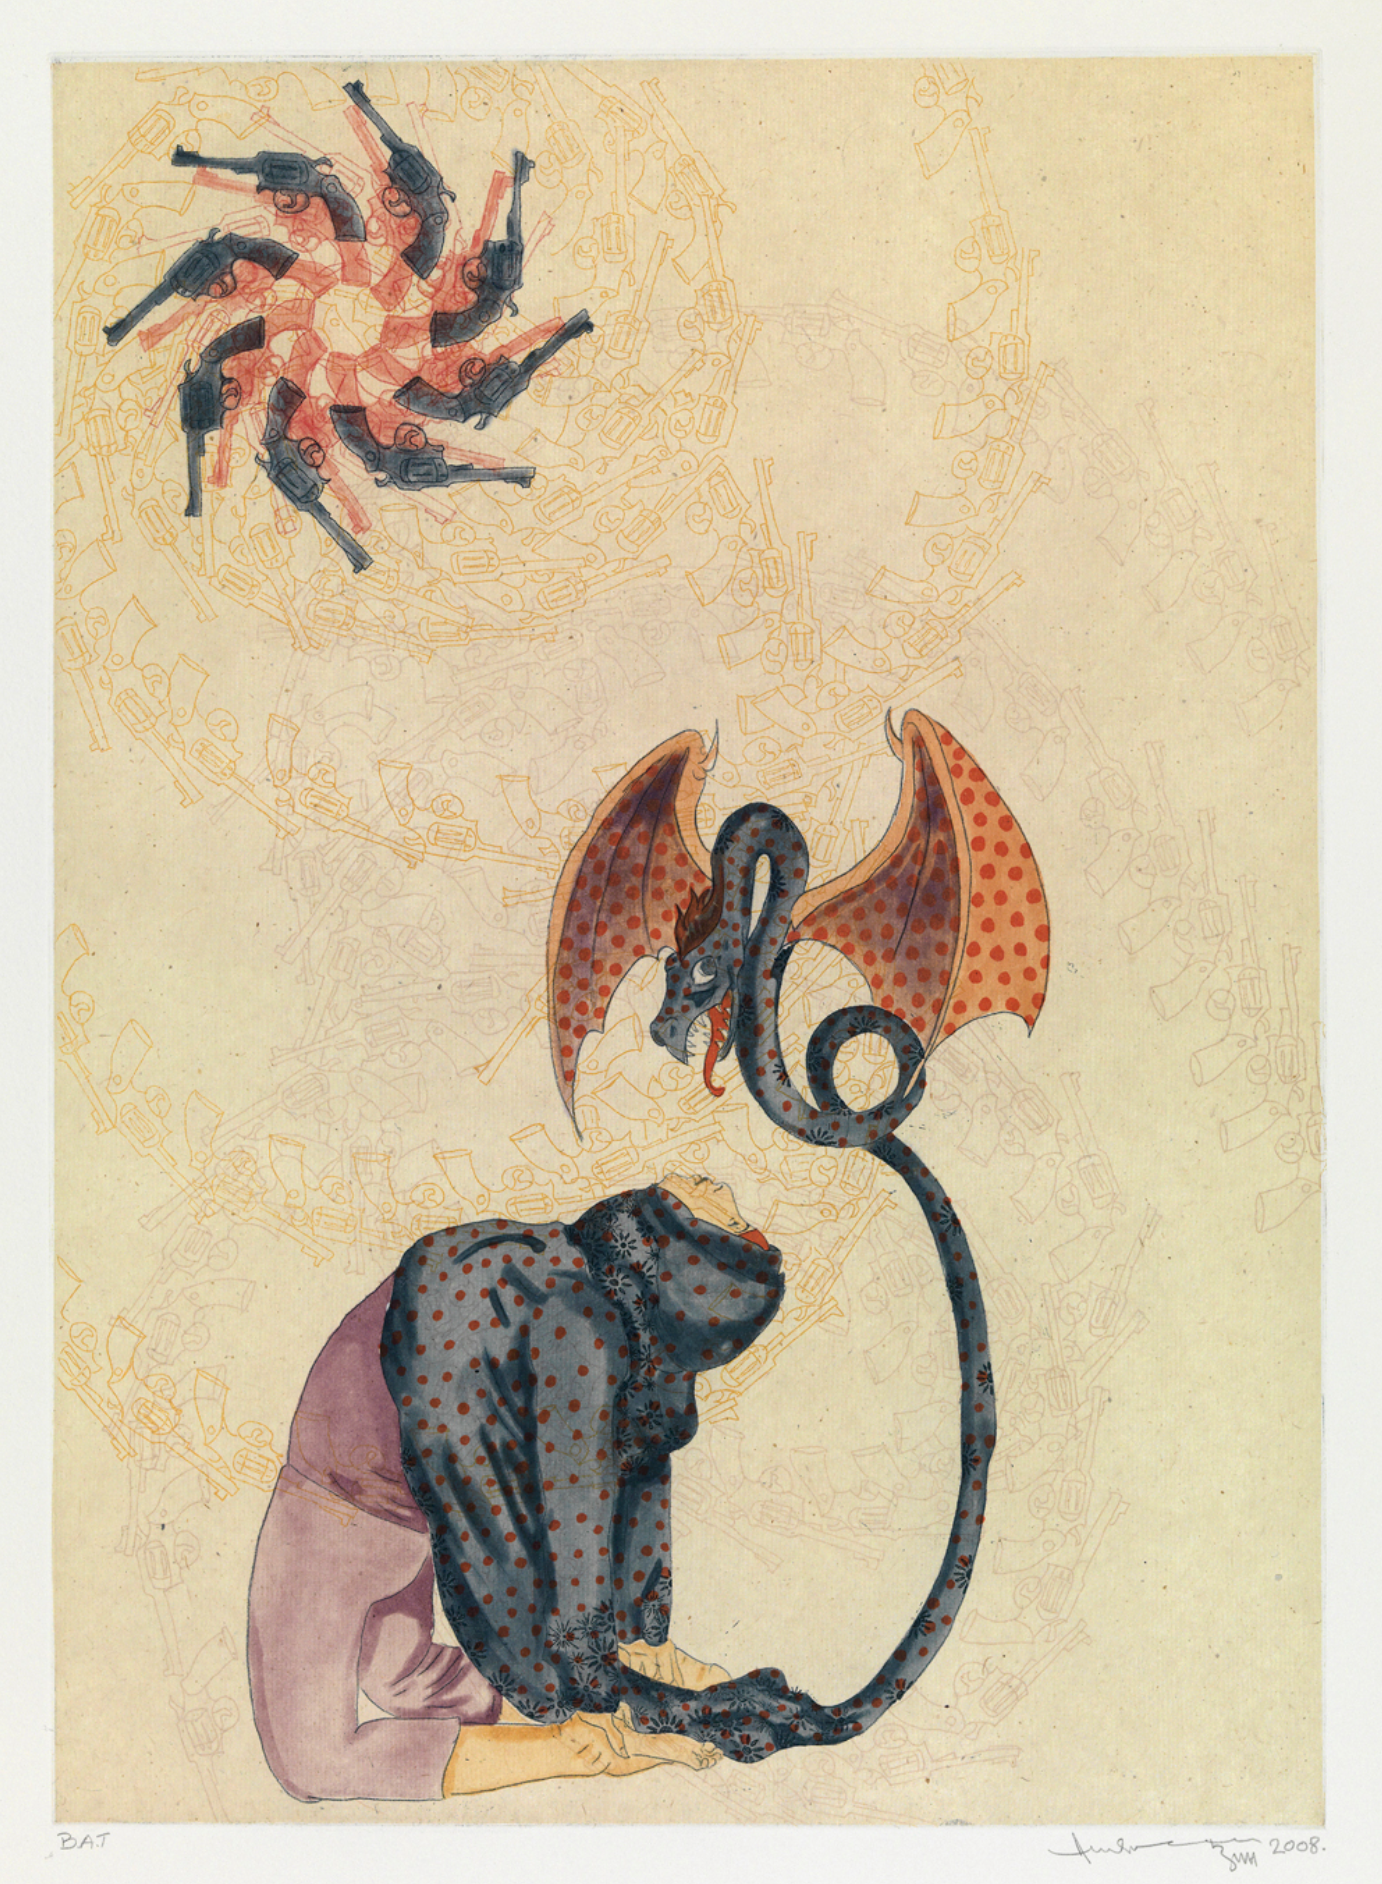 """""""Untitled (Woman/Dragon)"""" from """"Daughters of the East,"""" 2008. Ambreen Butt. Photo by Stephen Petegorsky. Courtesy of the artist and NMWA."""